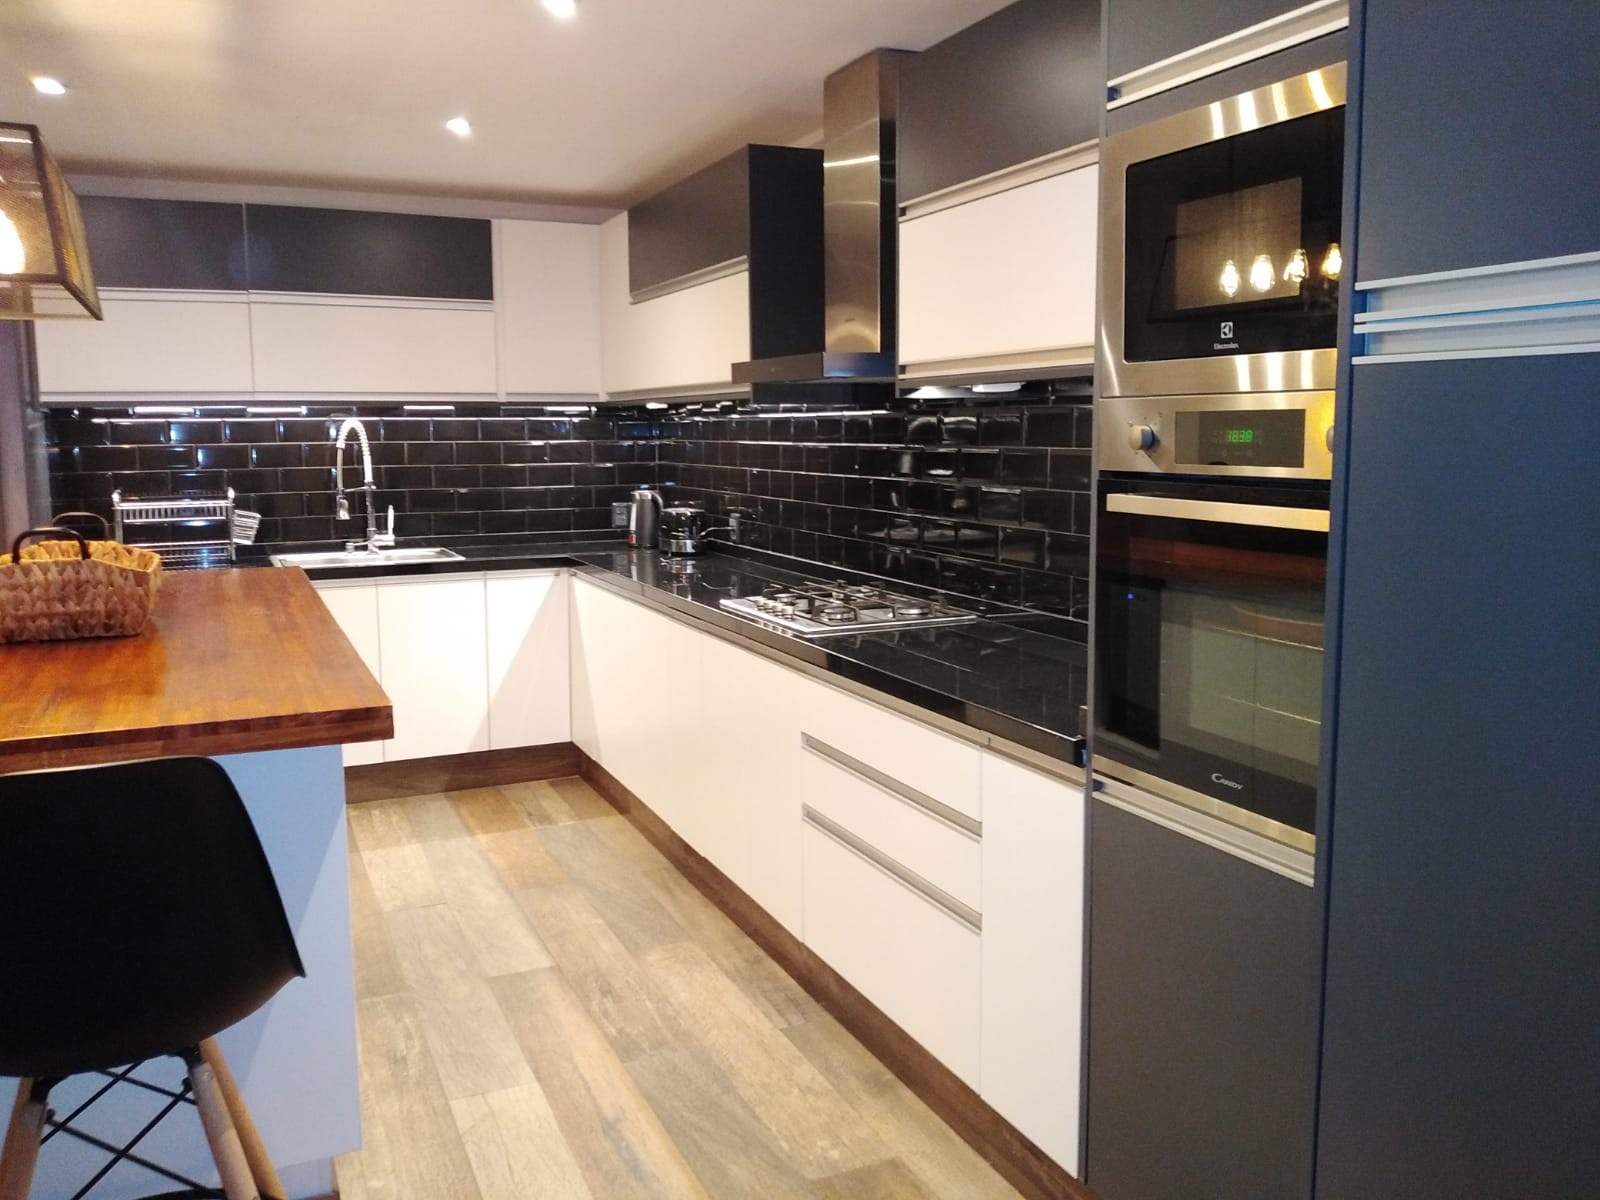 Vaucluse kitchen with undertile heating